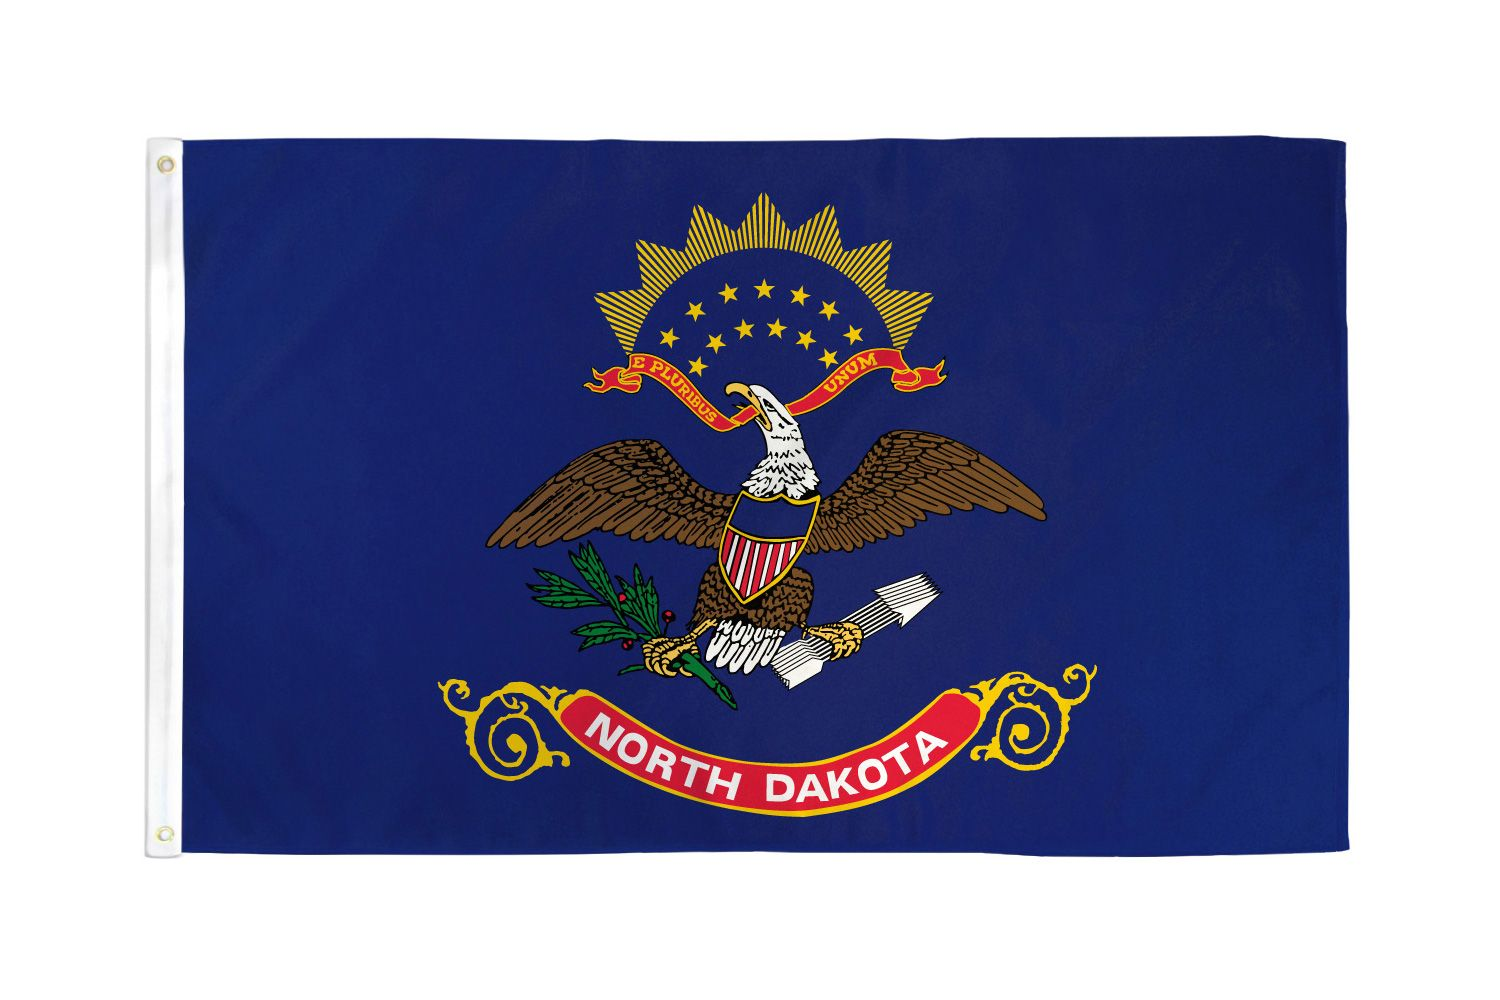 Shop72 - High Quality US State Flags - 100D 3x5 Polyester Flags - NorthDakota One Size